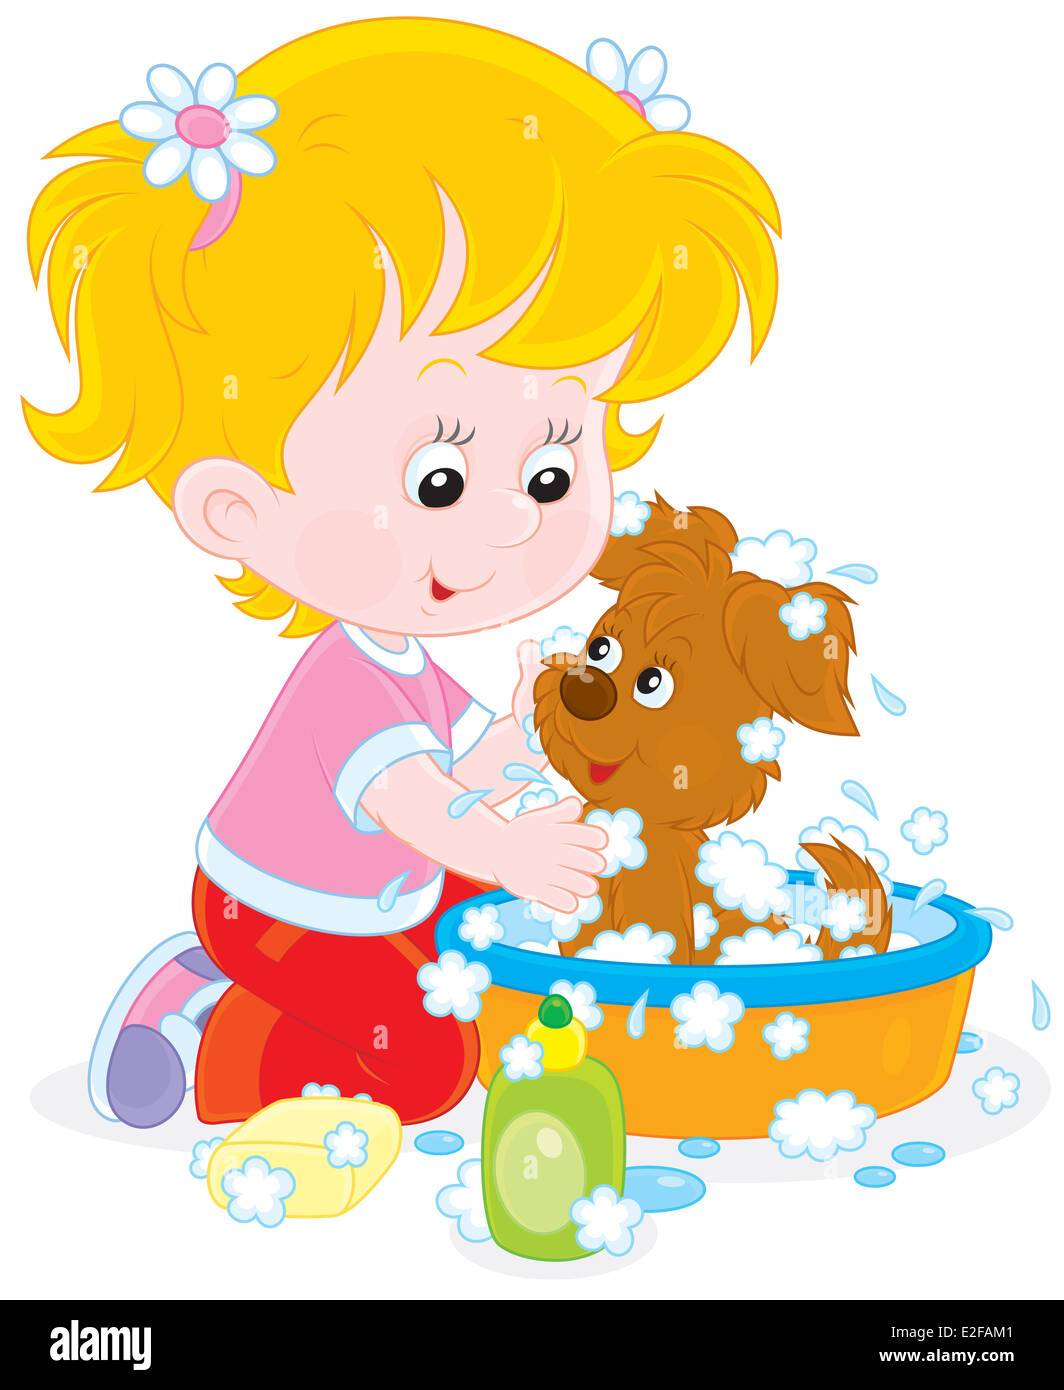 Girl washing a puppy - Stock Image